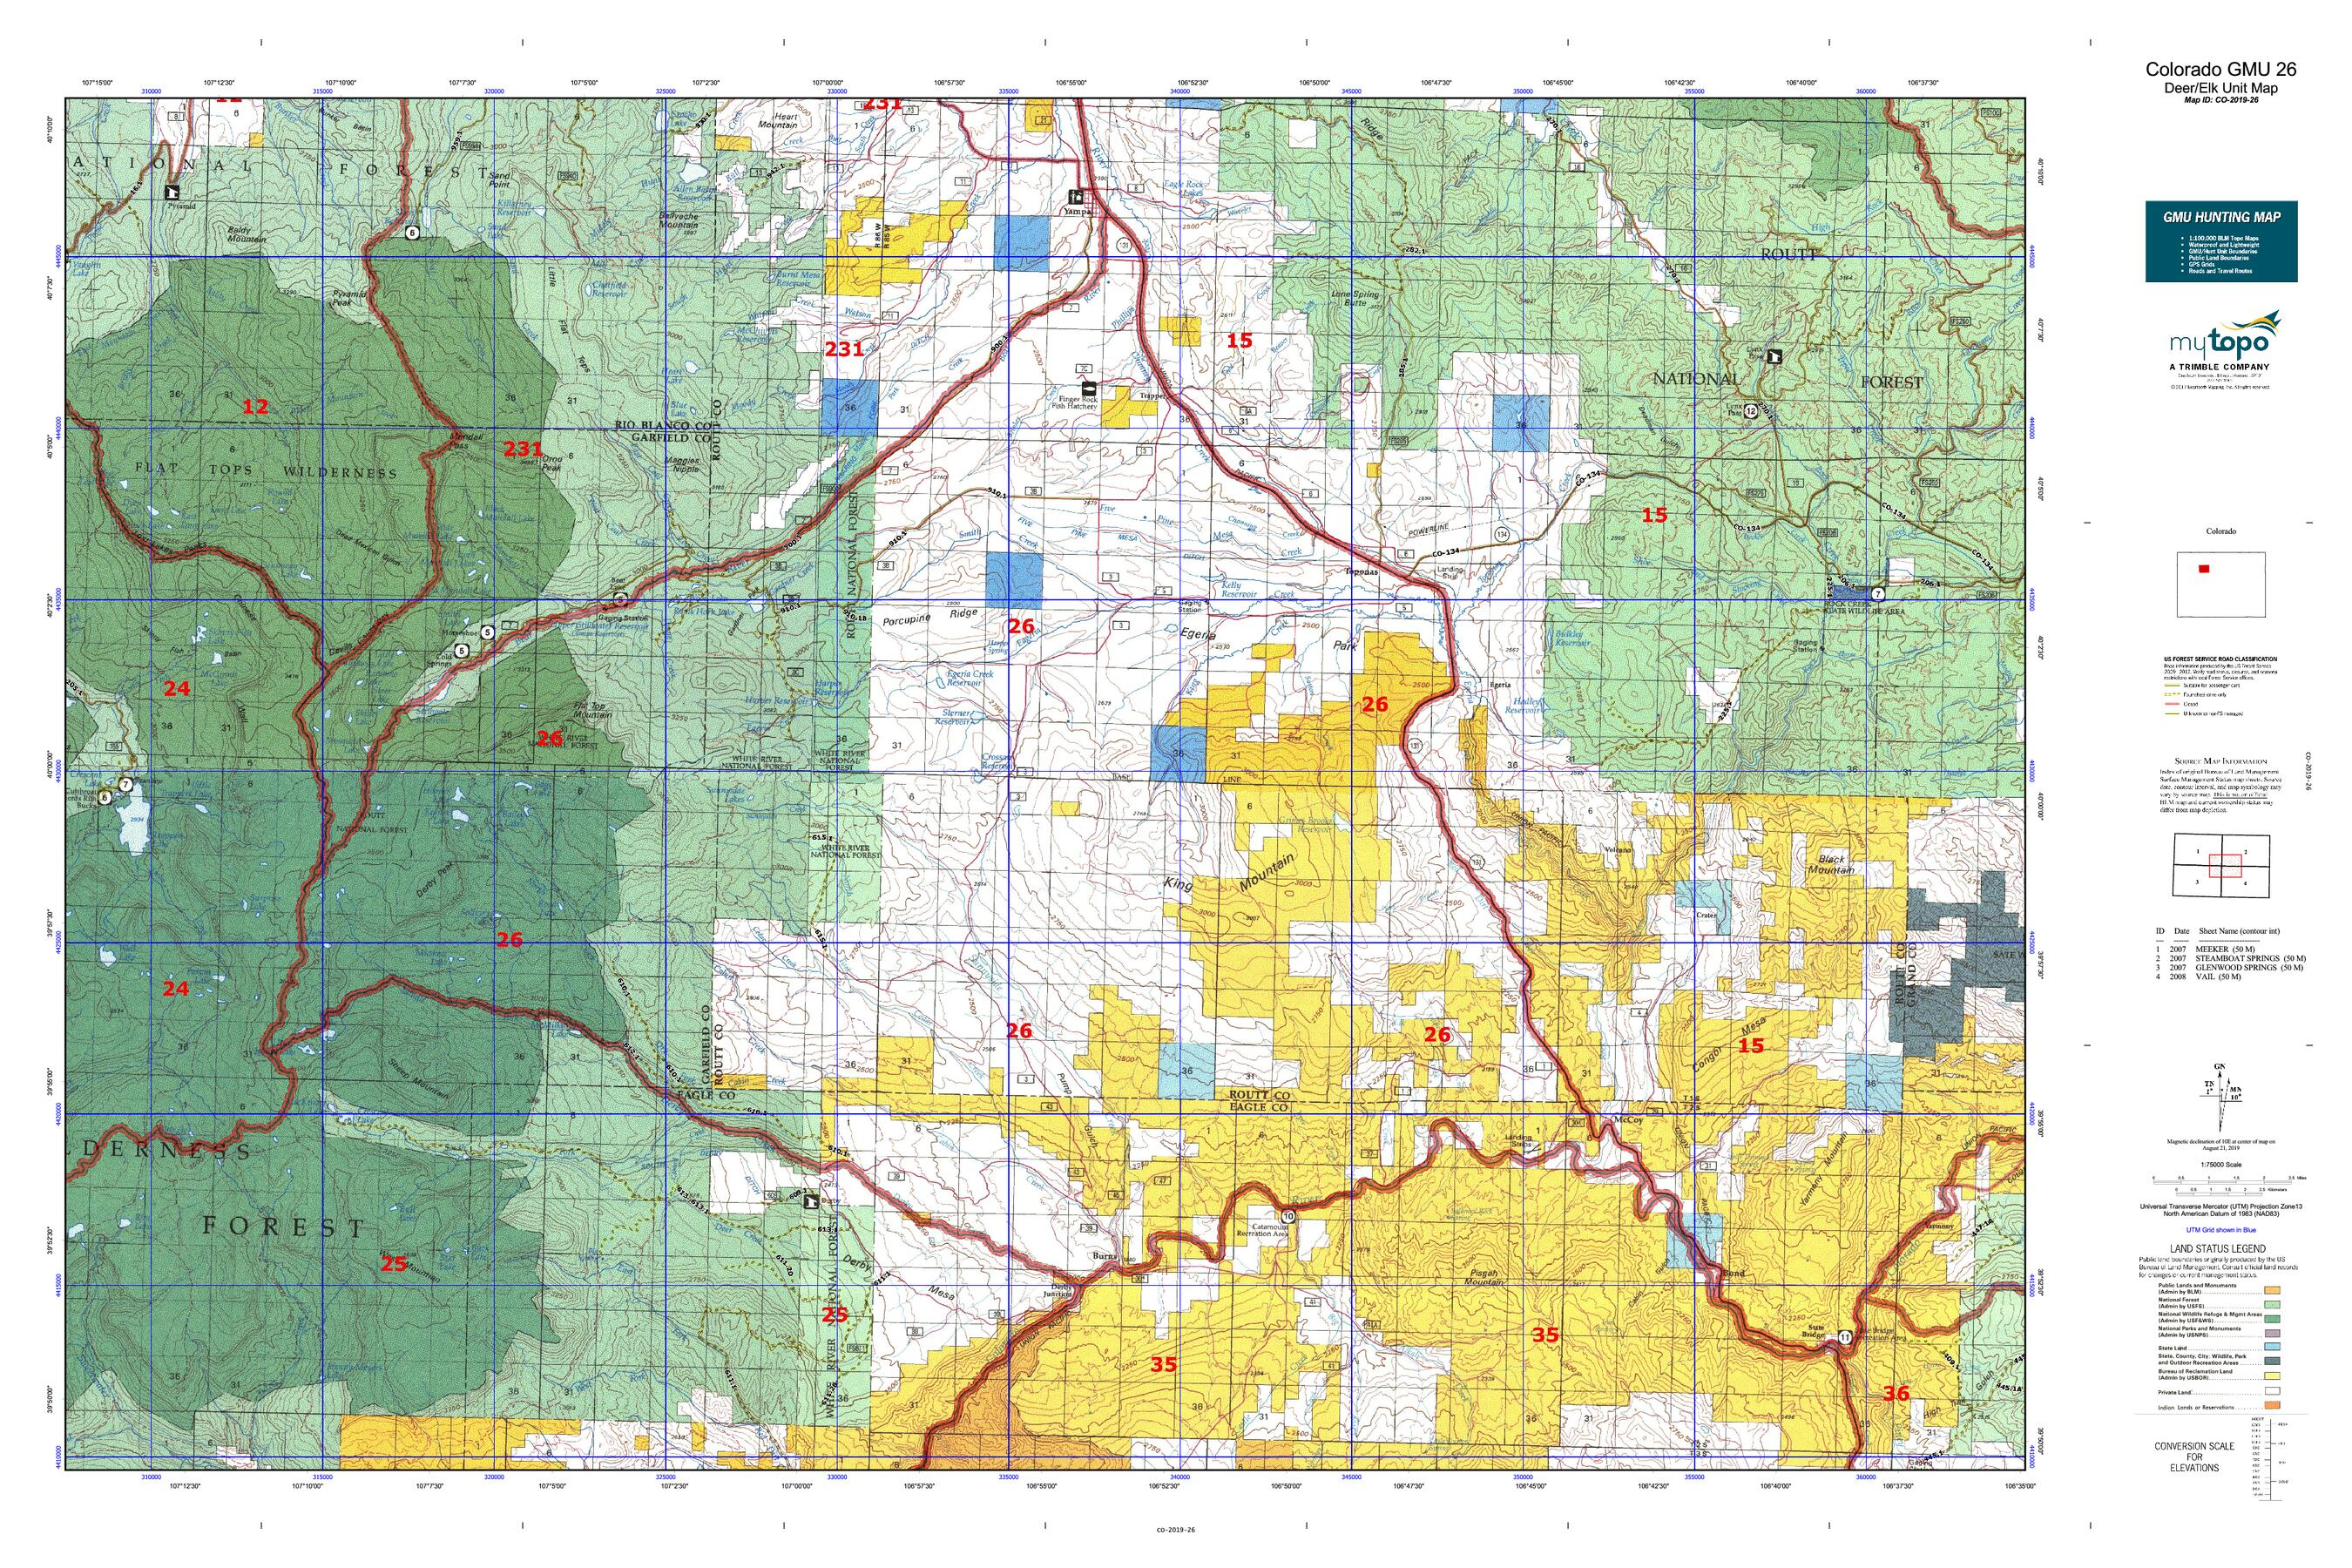 Colorado GMU 26 Map | MyTopo on eagle county road map, lafayette road map, kingman road map, chapel hill road map, rocky mountain national park road map, aspen road map, stowe road map, vail architecture, vail weather, longmont road map, jackson road map, sterling road map, cave creek road map, logan road map, vail restaurants, las animas county road map, california road map, vail hotels, park city road map, broomfield road map,